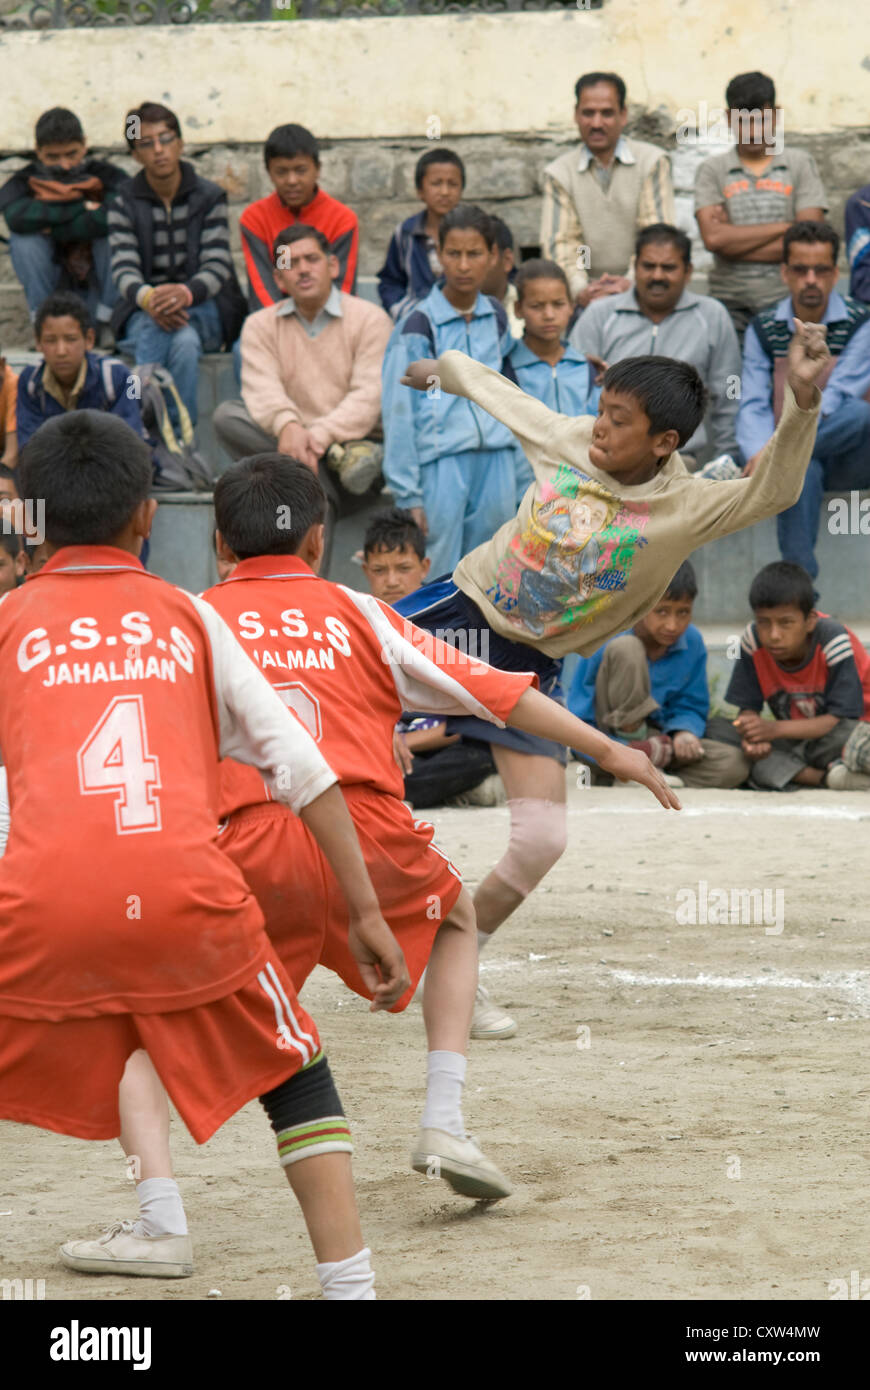 Boys from different schools compete at Kabaddi in Keylong, North India - Stock Image